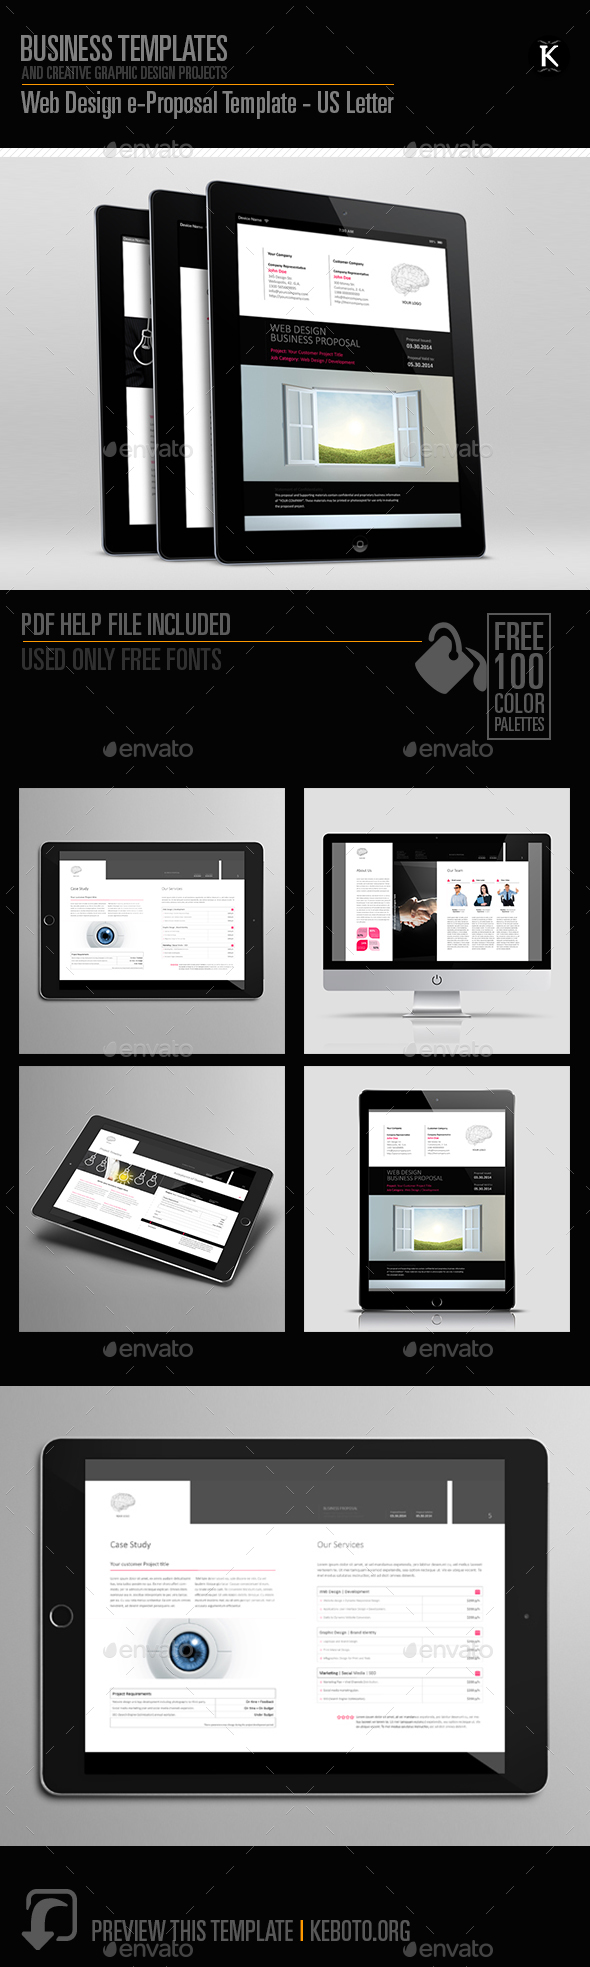 Web Design e-Proposal Template US Letter